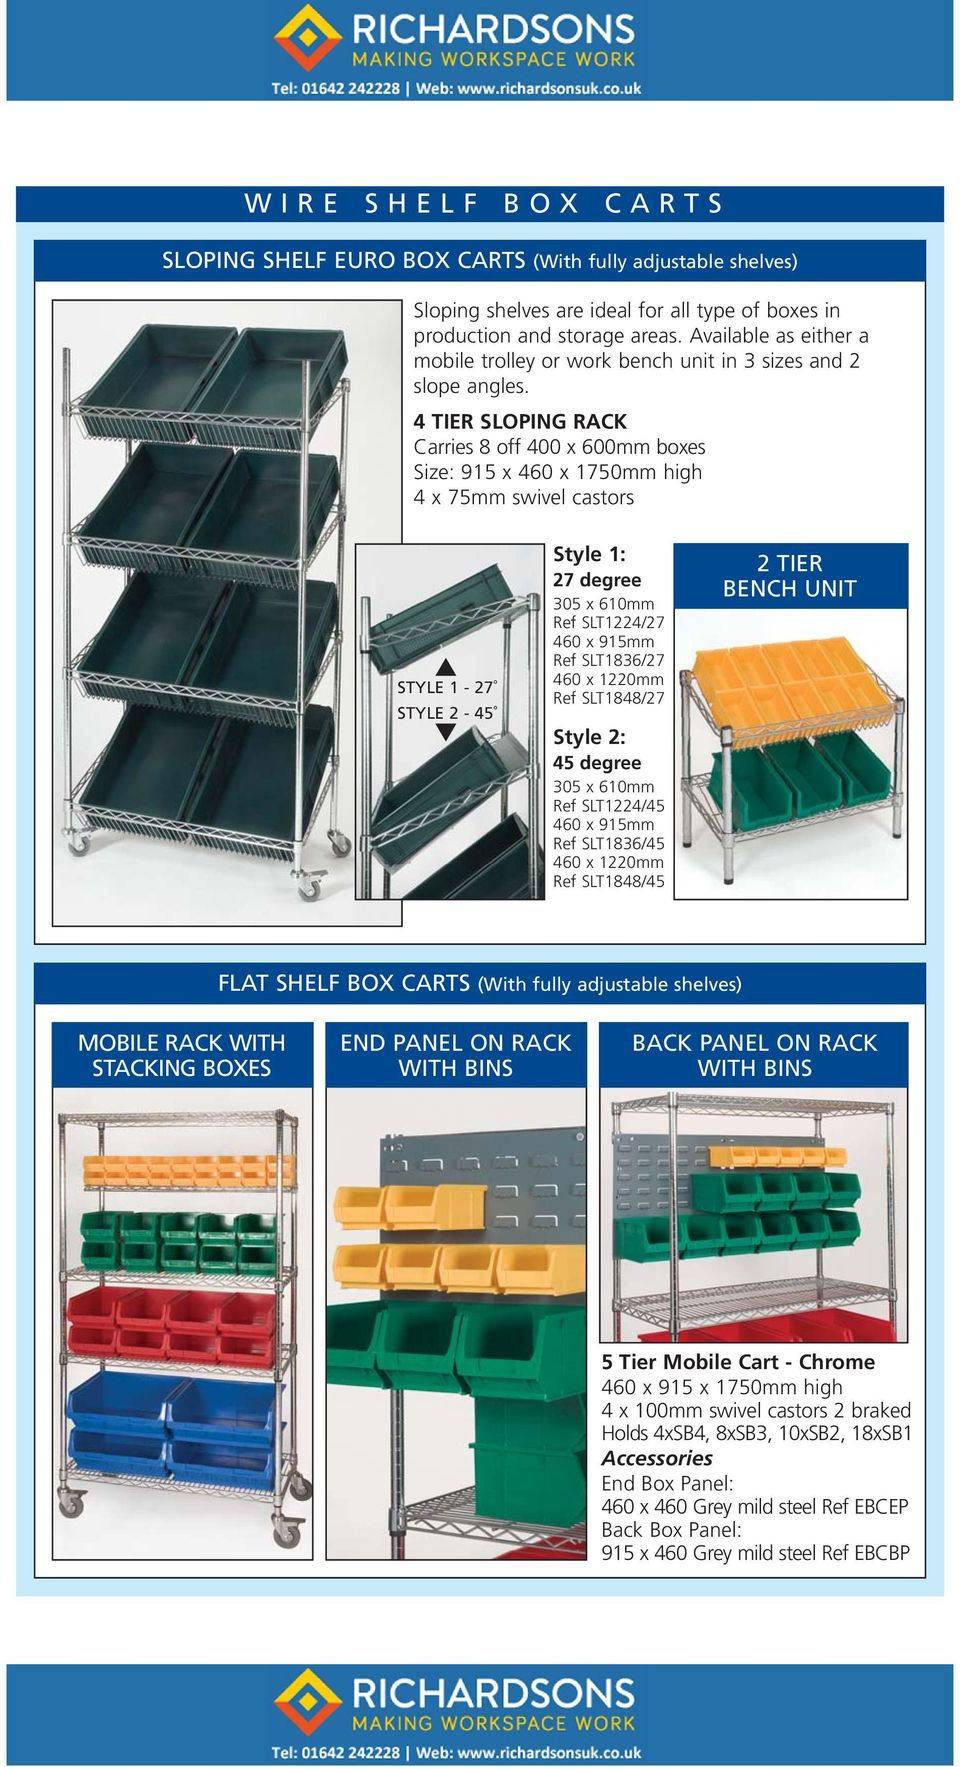 4 TIER SLOPING RACK Carries 8 off 400 x 600mm boxes Size: 915 x 460 x 1750mm high 4 x 75mm swivel castors STYLE 1-27 STYLE 2-45 Style 1: 27 degree 305 x 610mm Ref SLT1224/27 460 x 915mm Ref